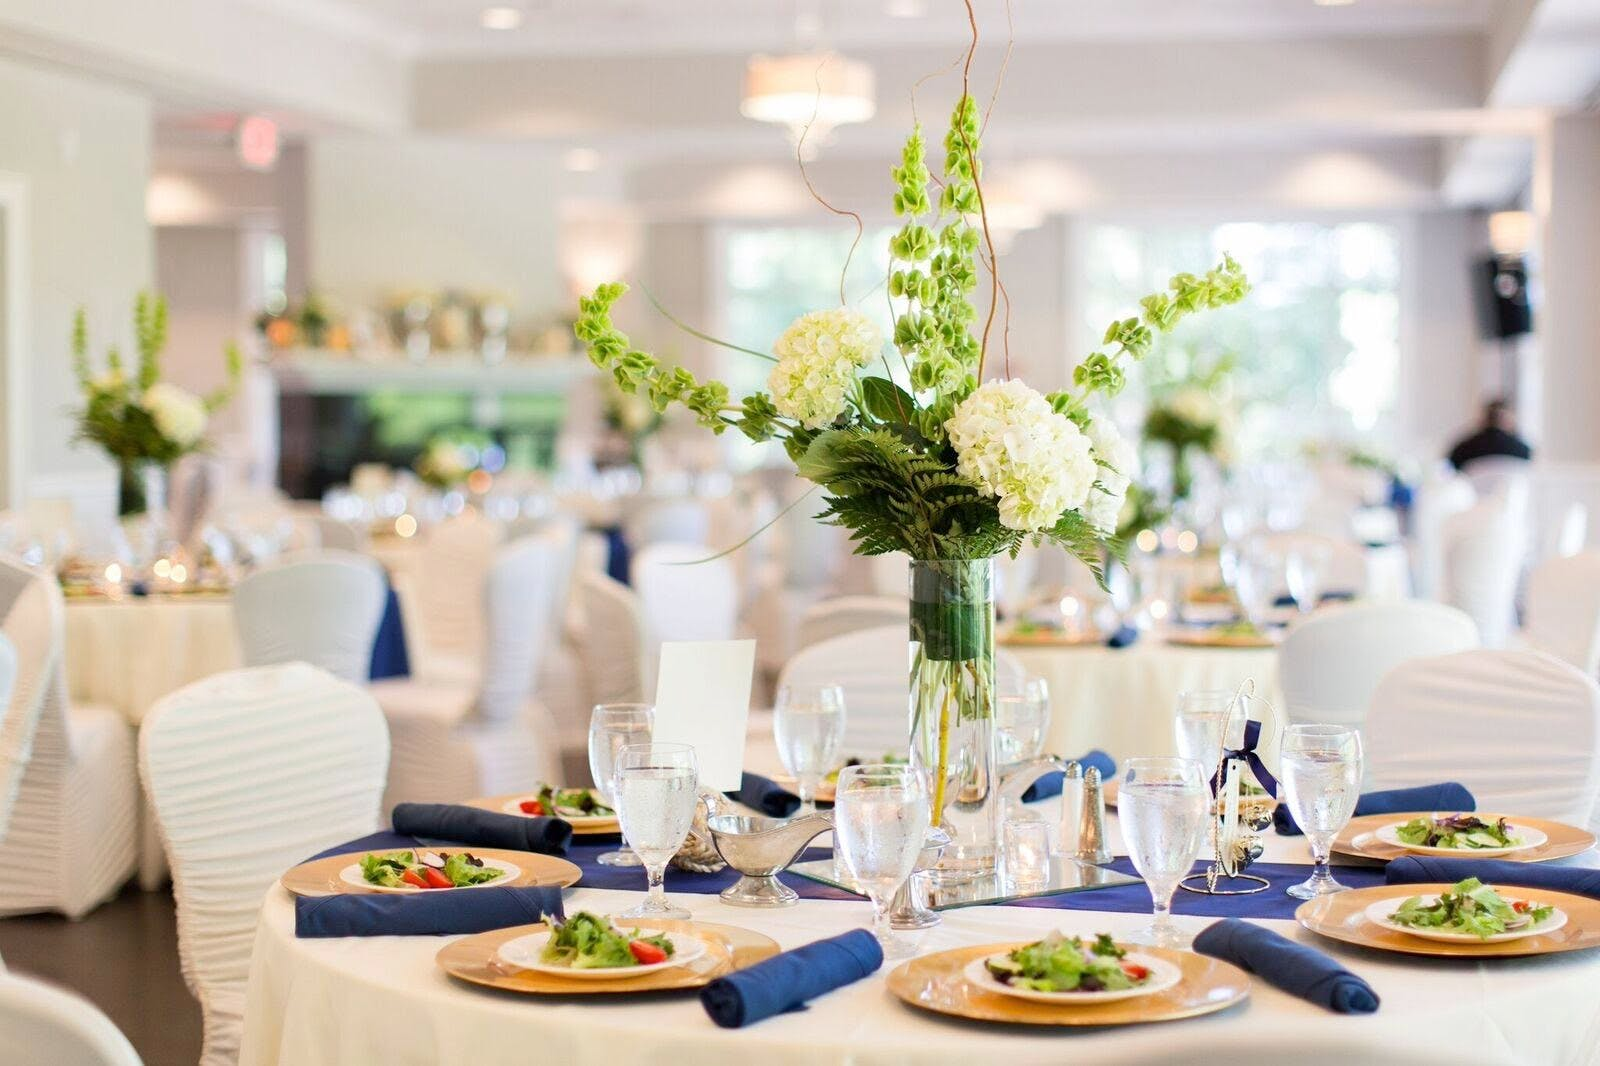 THE LODGE at Kiln Creek - Newport News, Virginia - Hampton Roads Luxury Hotel - Hampton Roads Wedding Venue